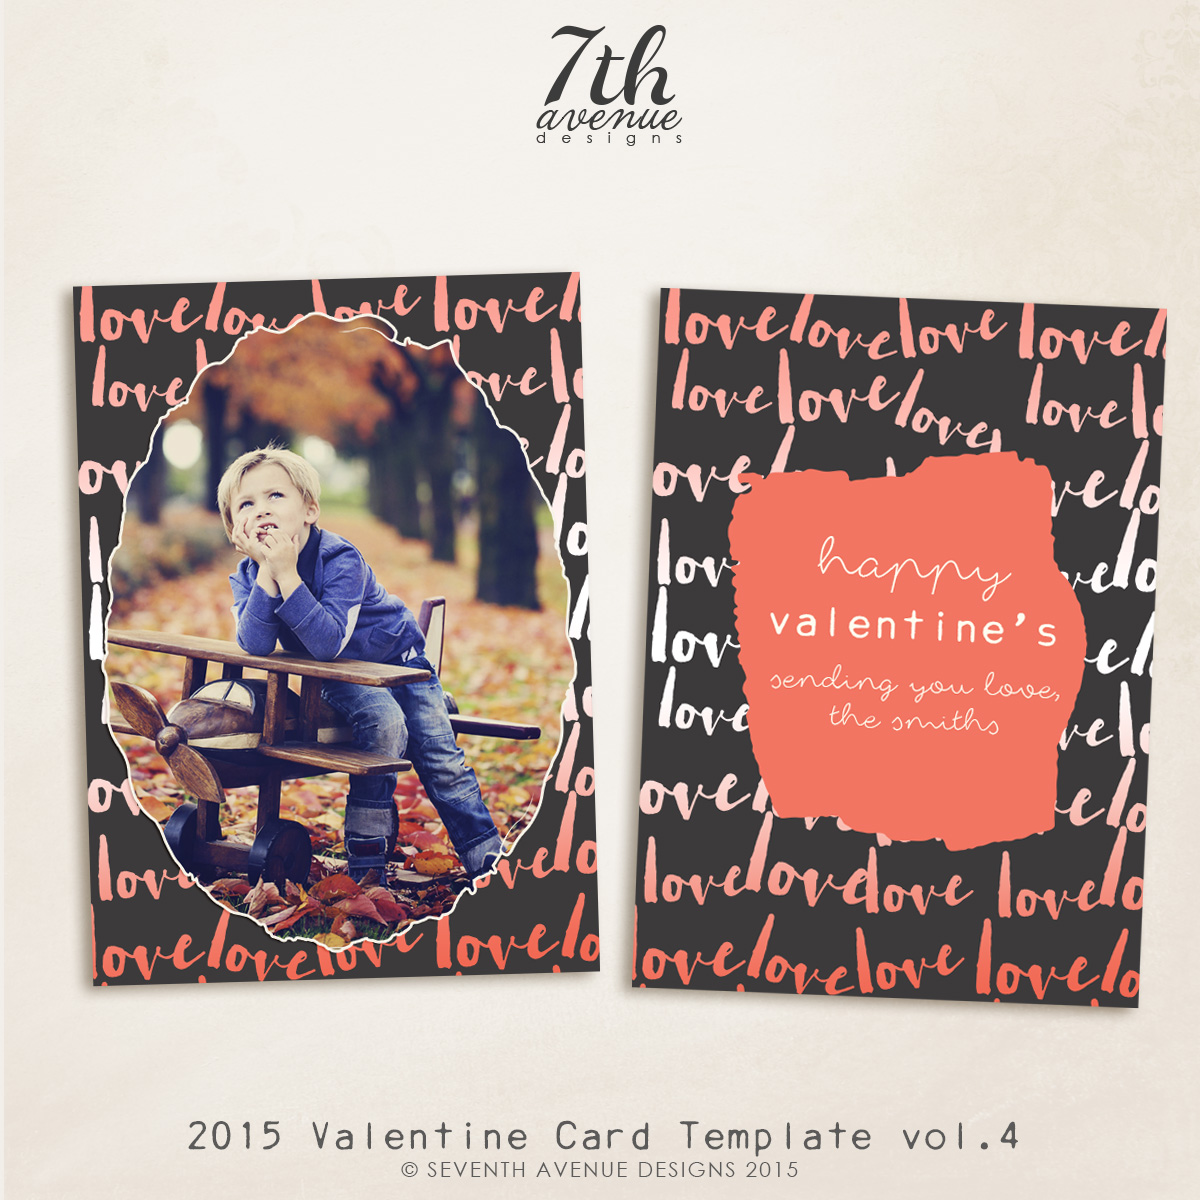 2015 Valentines Card vol.4